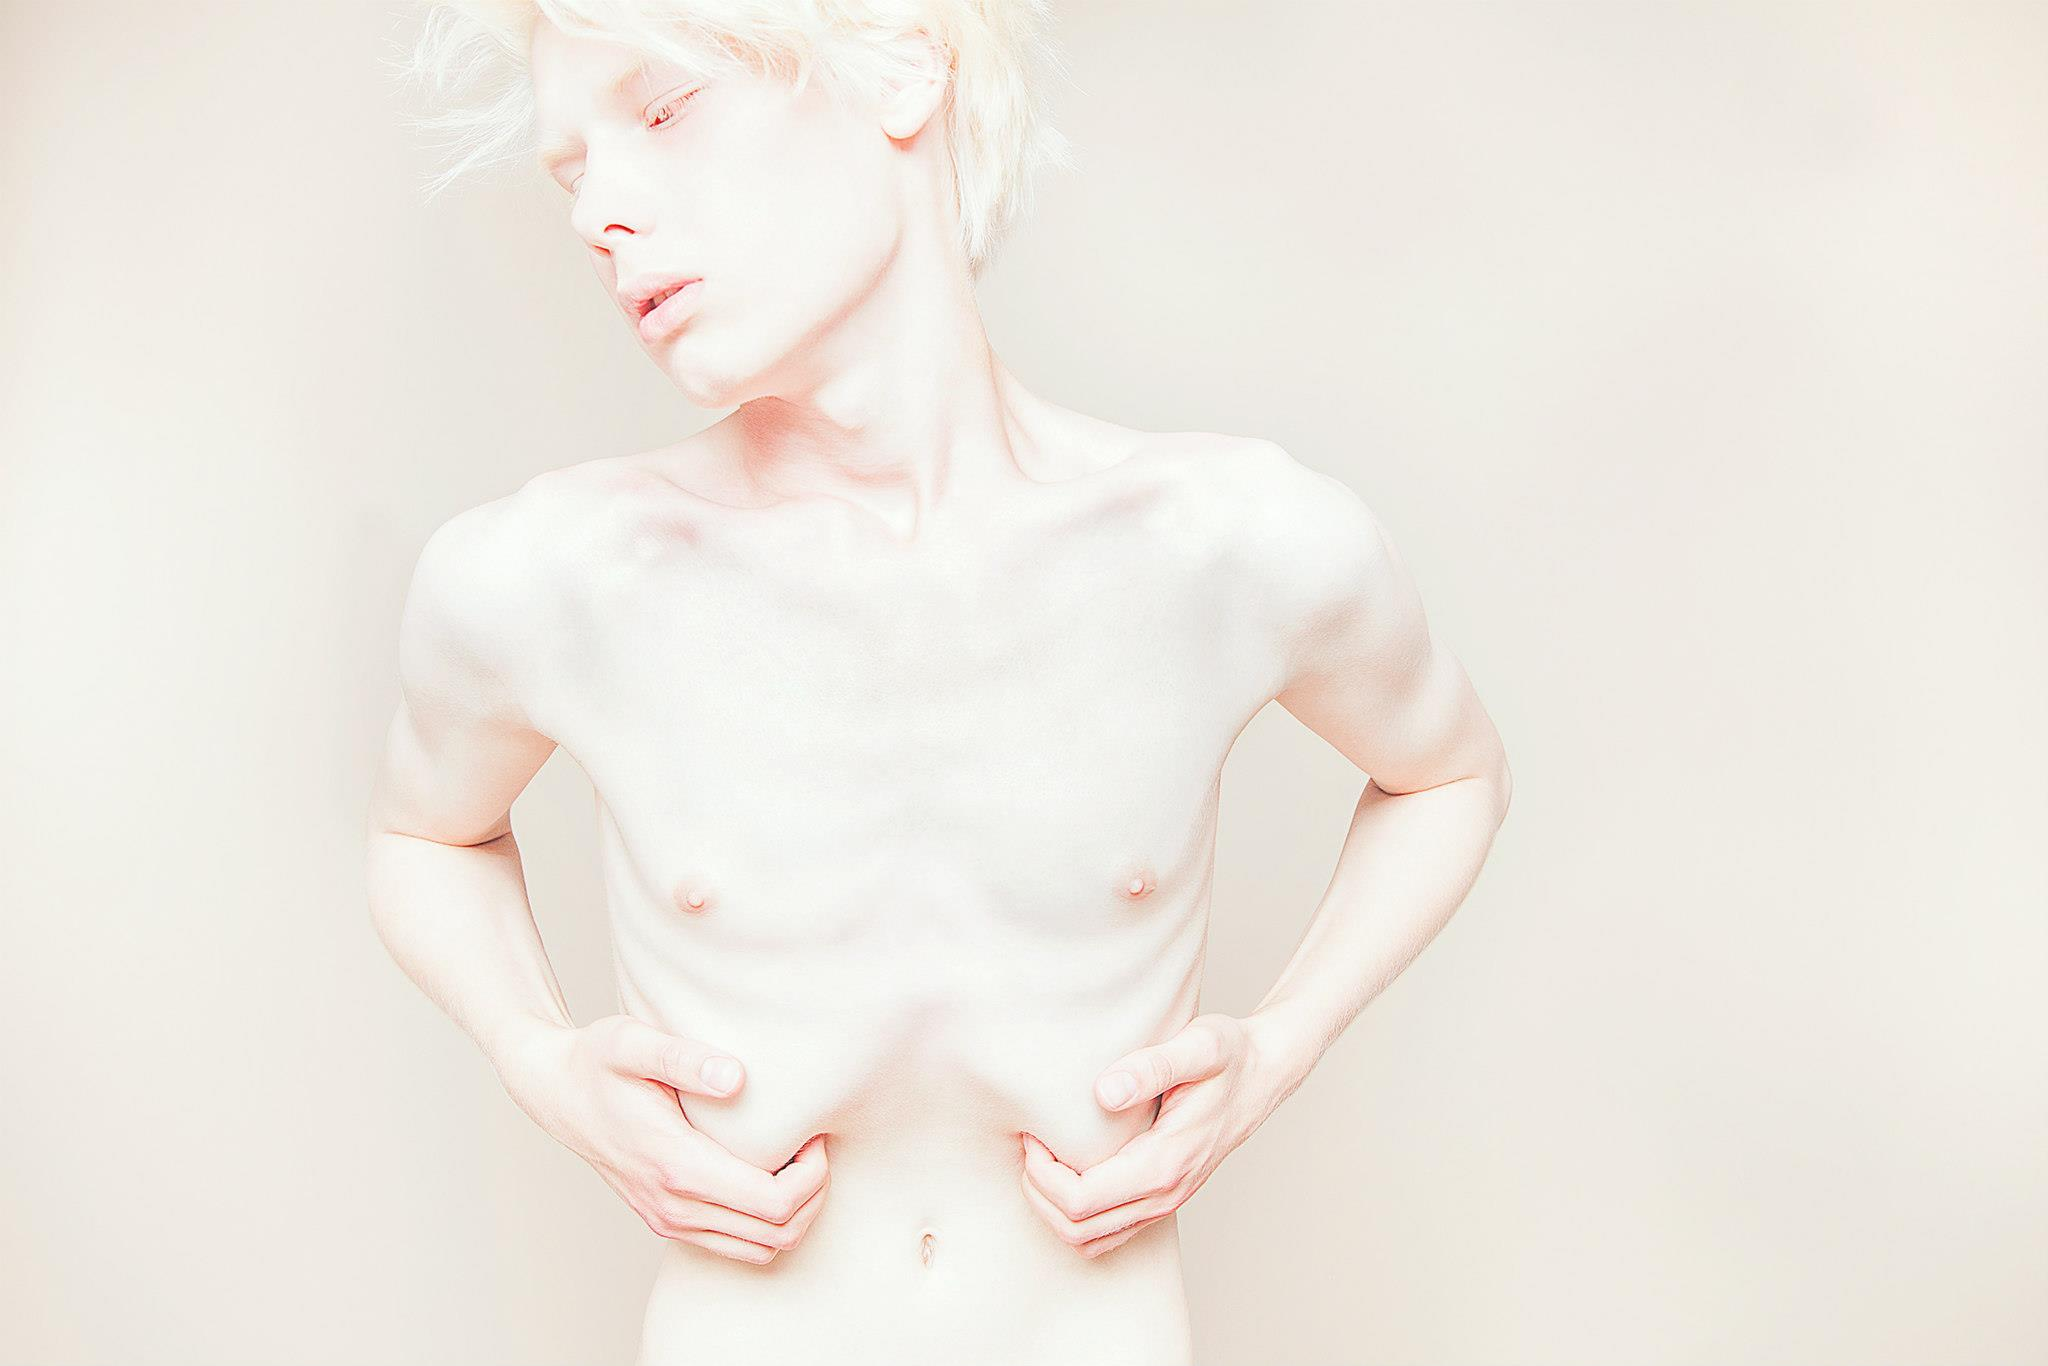 Albino nude people — photo 13